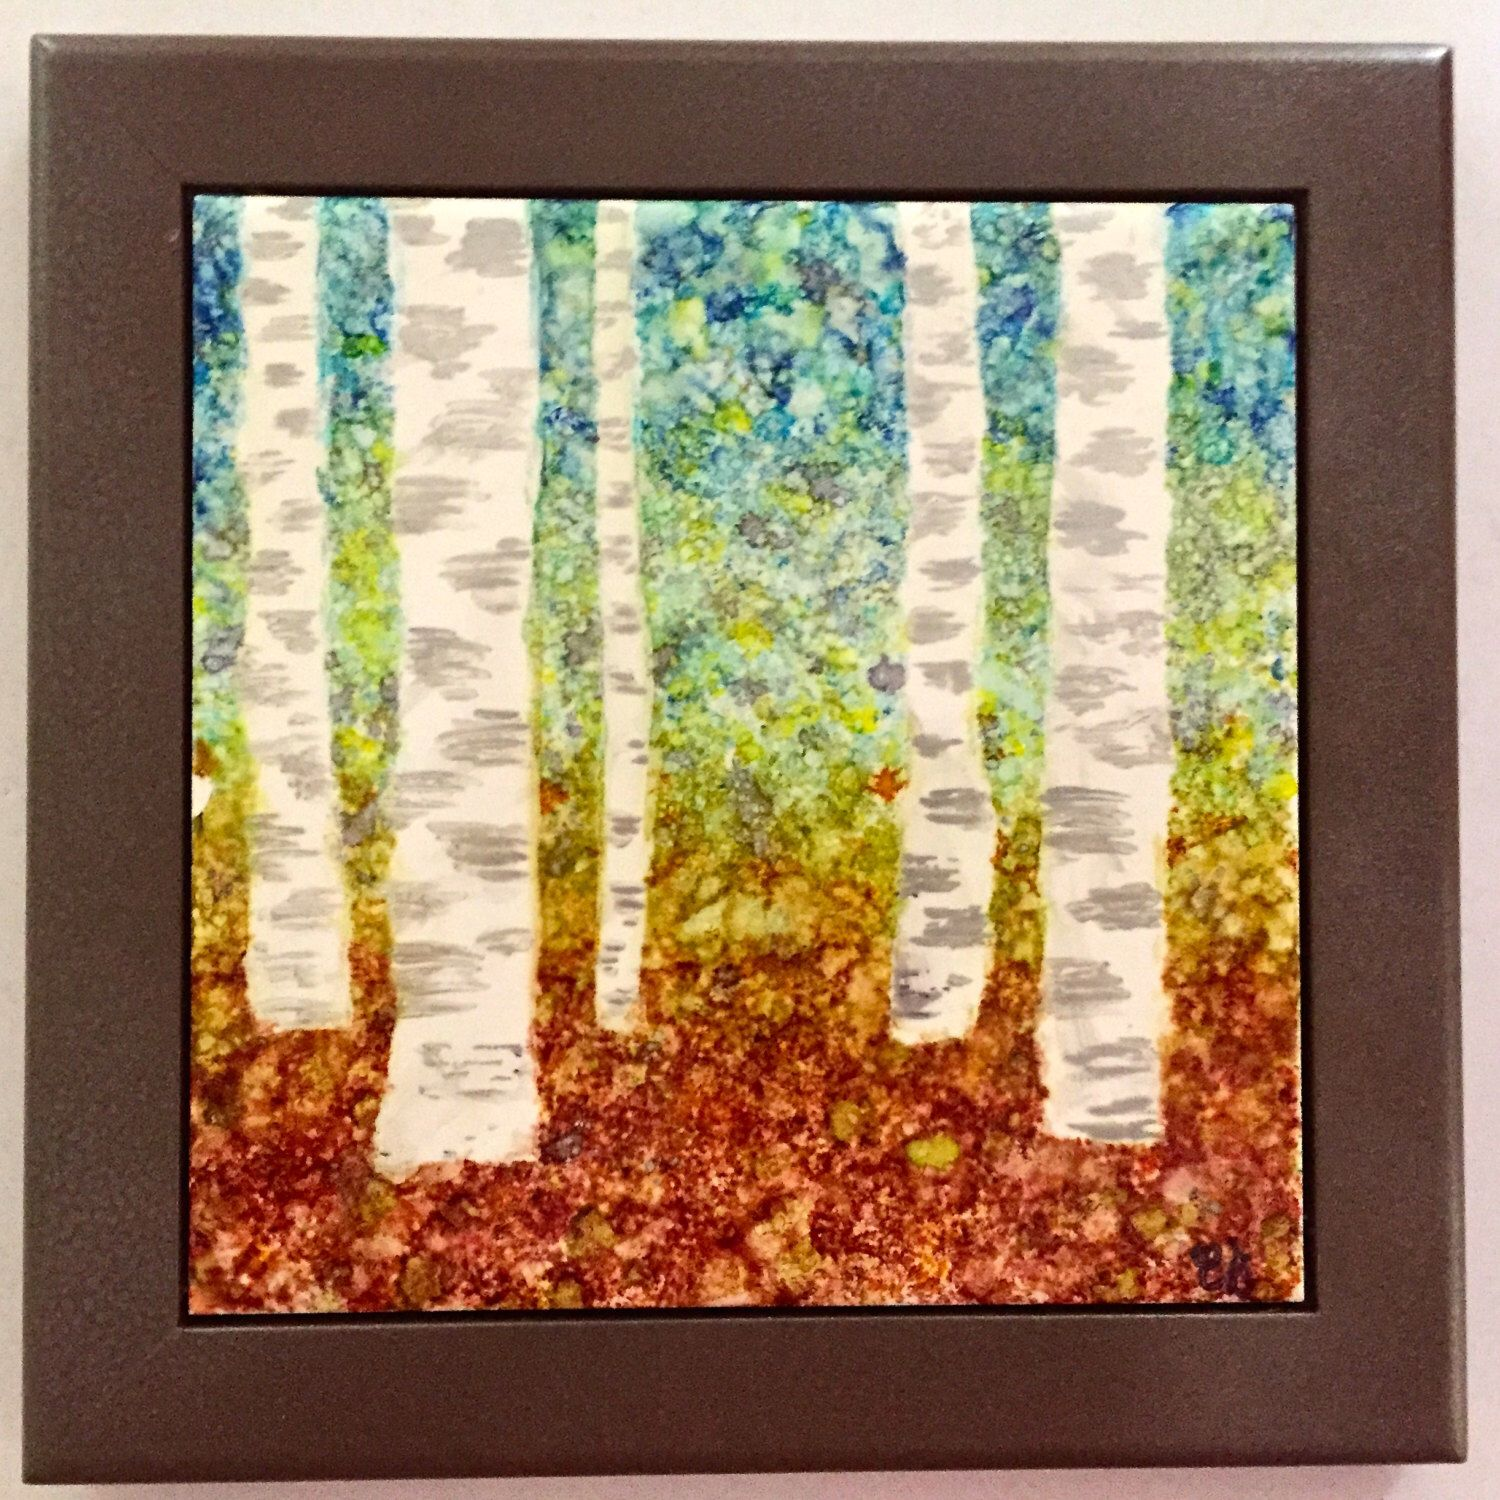 Framed ceramic tile trivet with hand painted alcohol ink birch trees framed ceramic tile trivet with hand painted alcohol ink birch trees in autumn by junecleaveddesigns on dailygadgetfo Choice Image